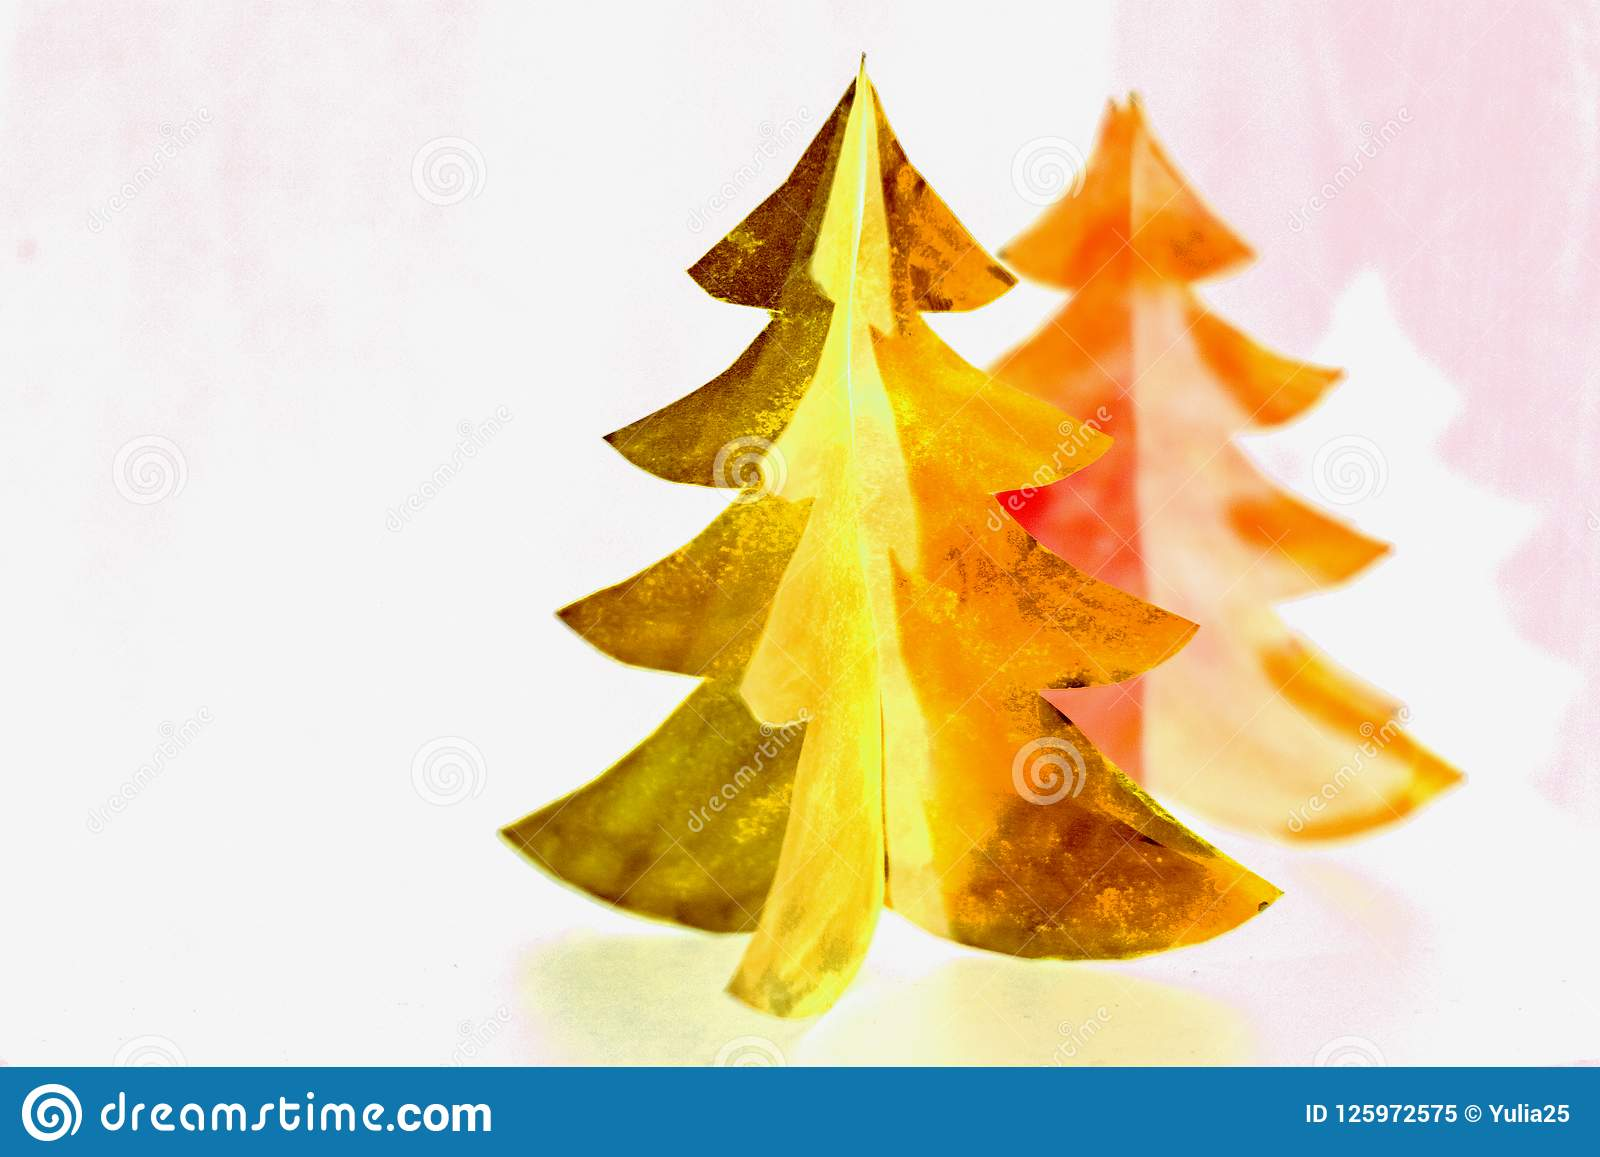 Christmas Tree Paper Cutting Design Card Christmas Tree Paper Craft